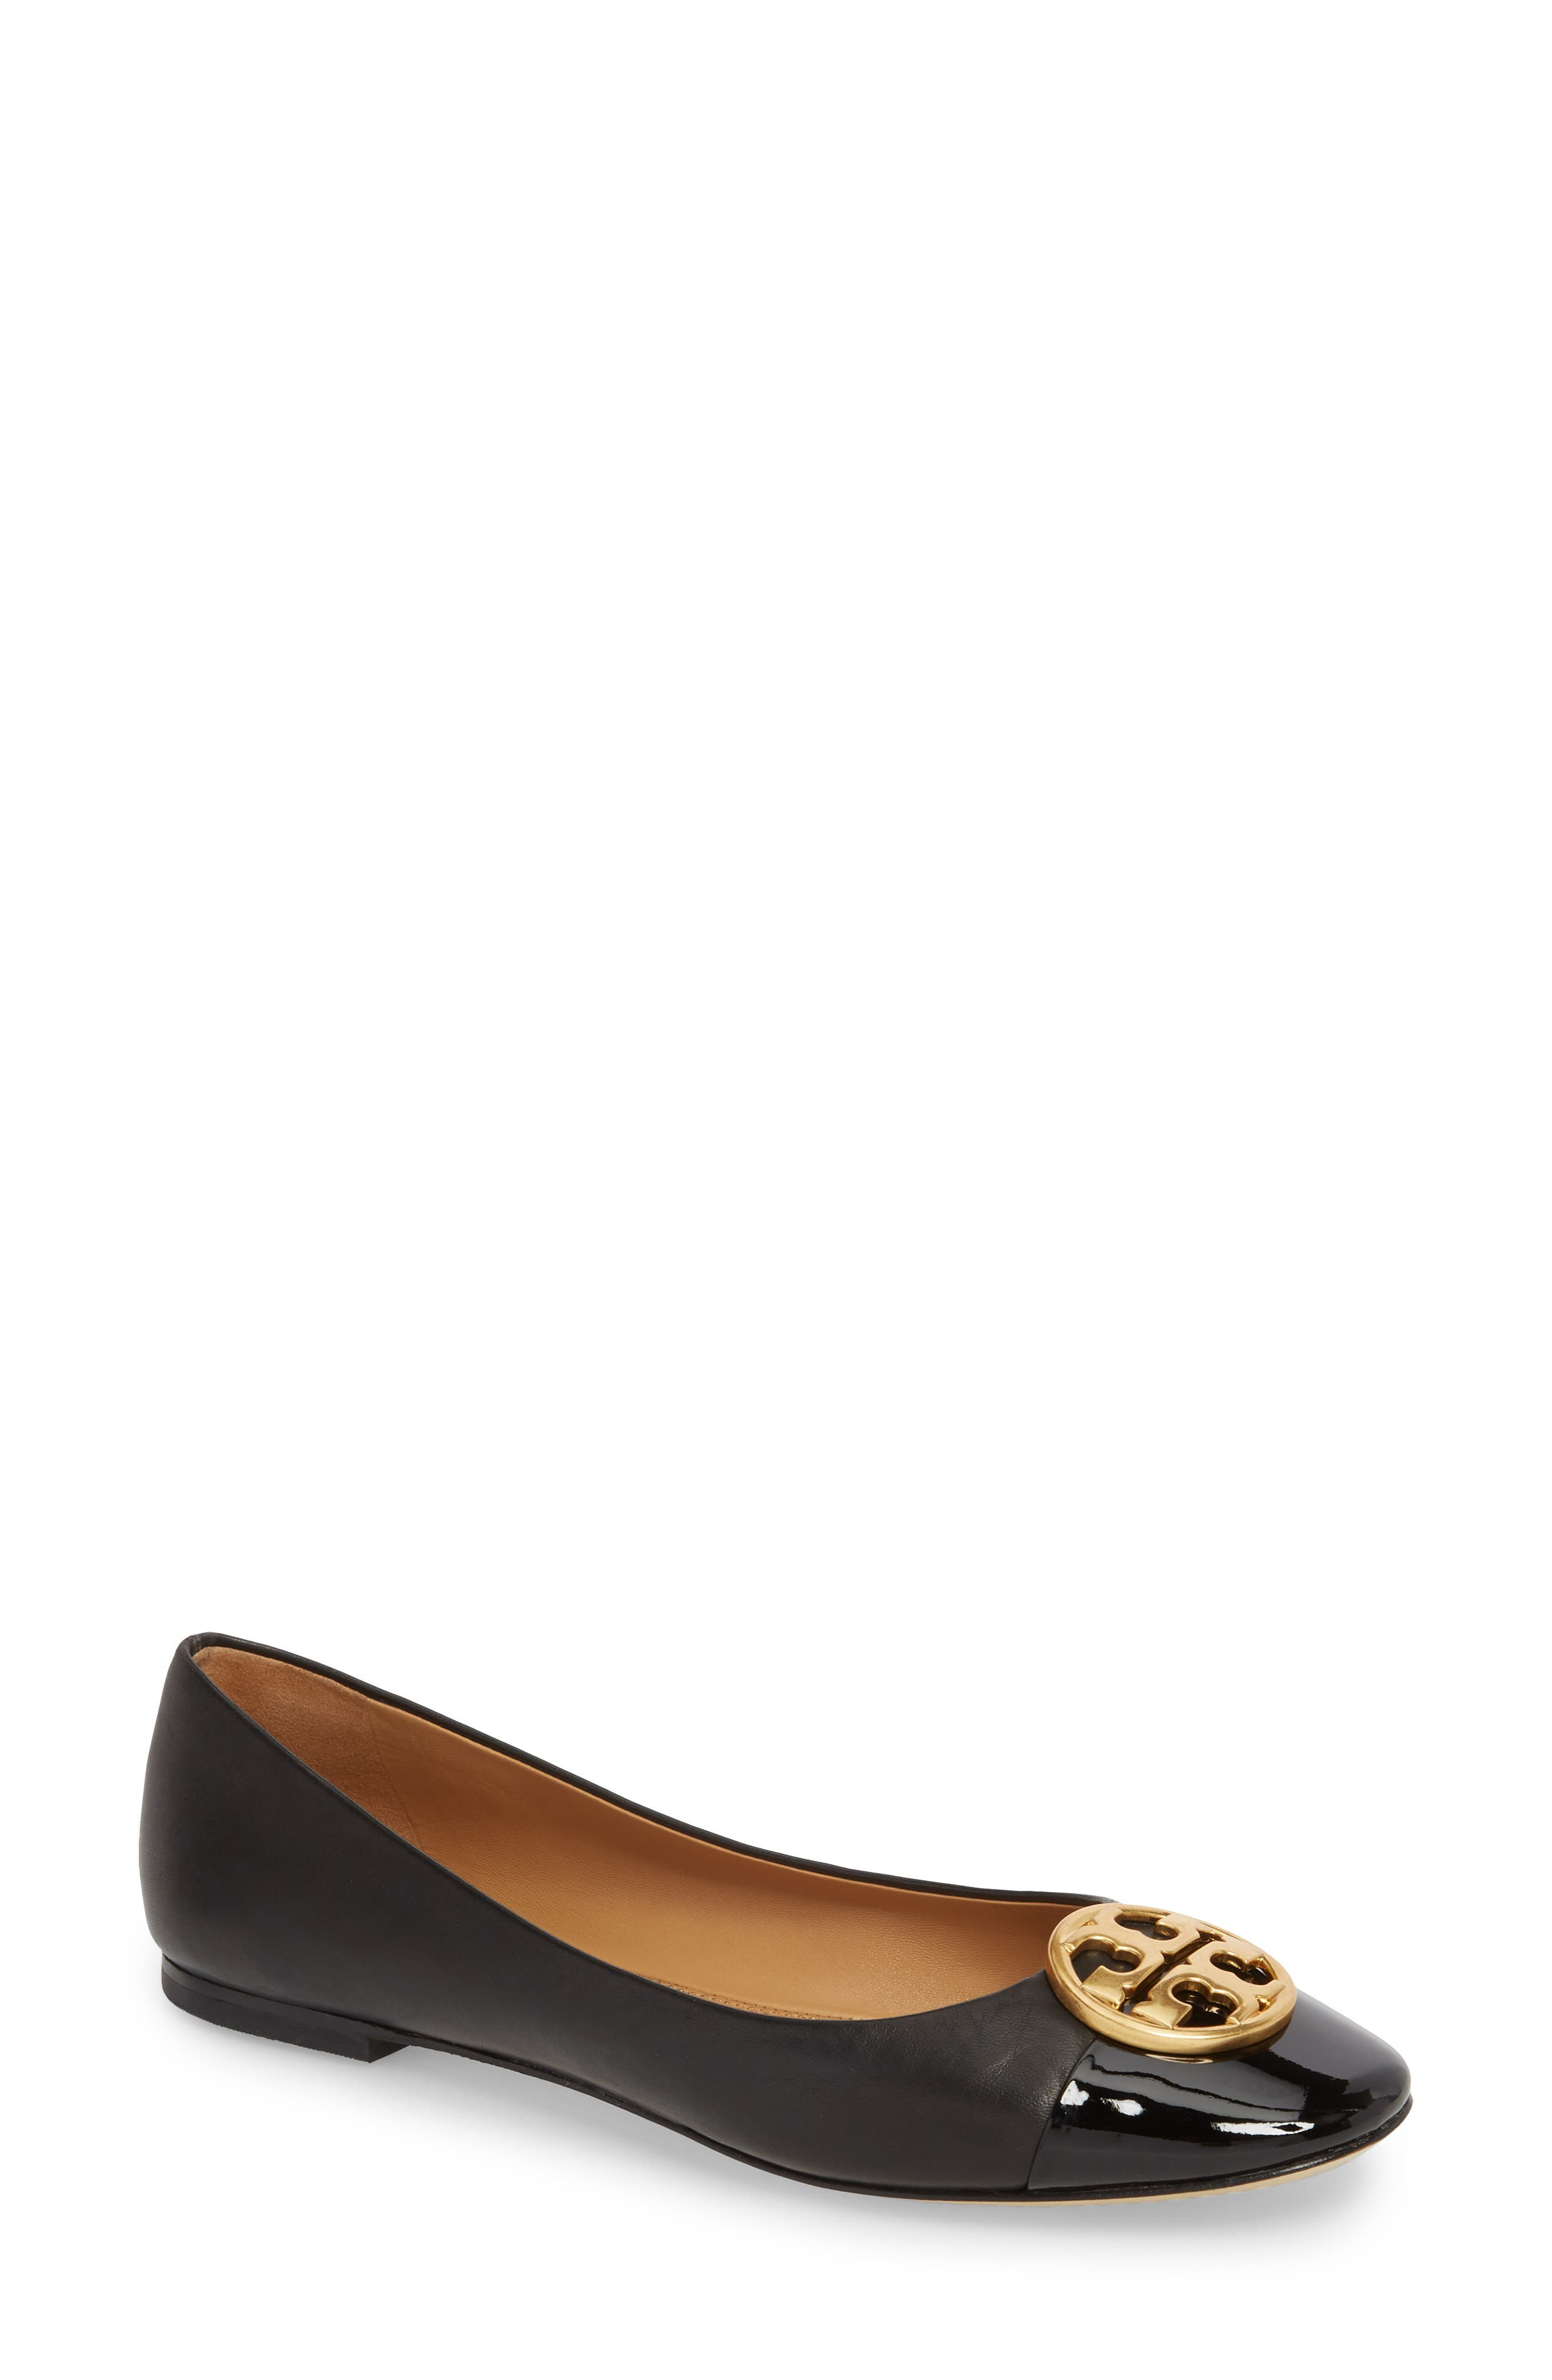 TORY BURCH, Chelsea Cap Toe Ballet Flat, Main thumbnail 1, color, BLACK